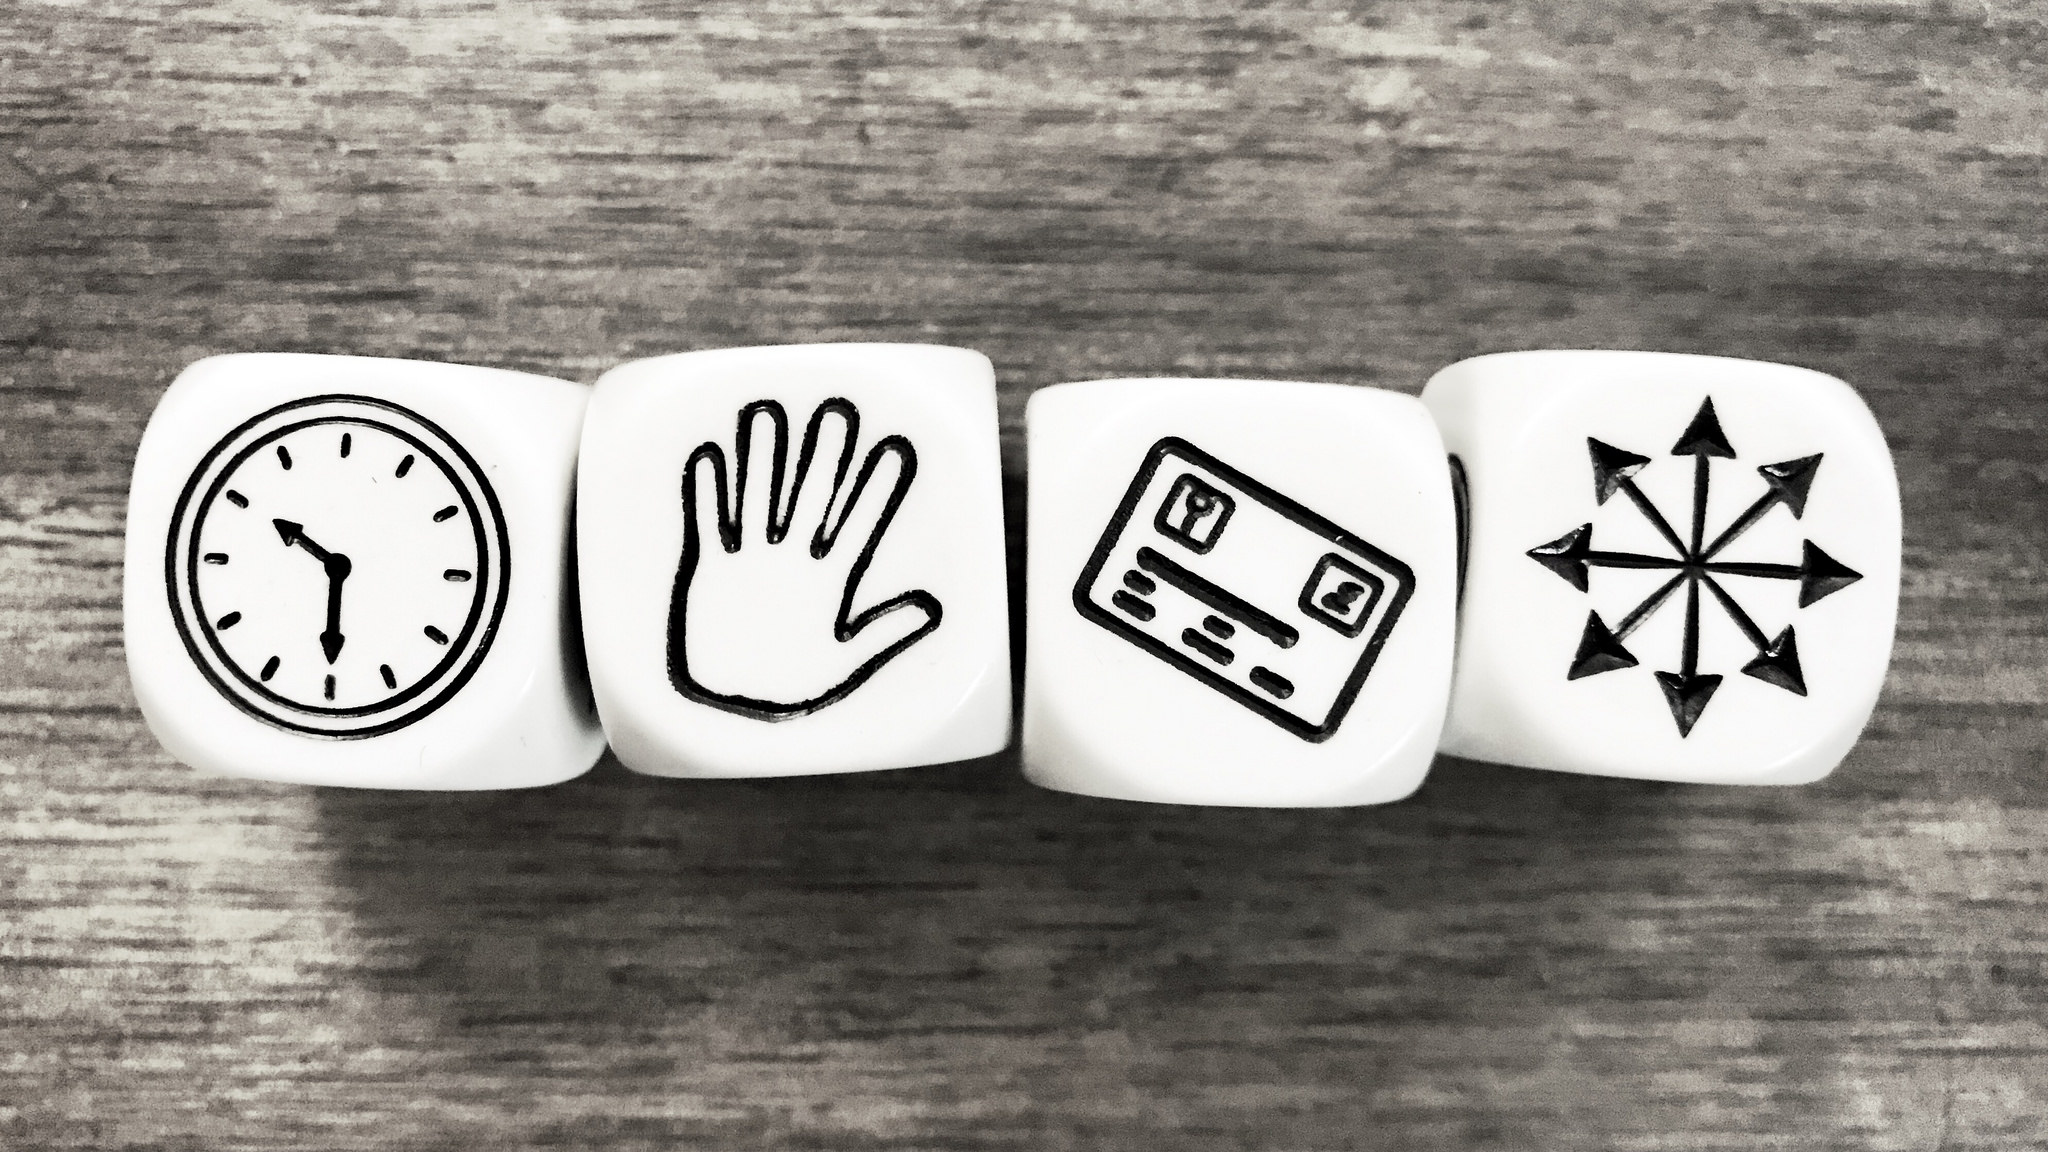 It's time to stop email clutter, according to  Rory's Story Cubes .